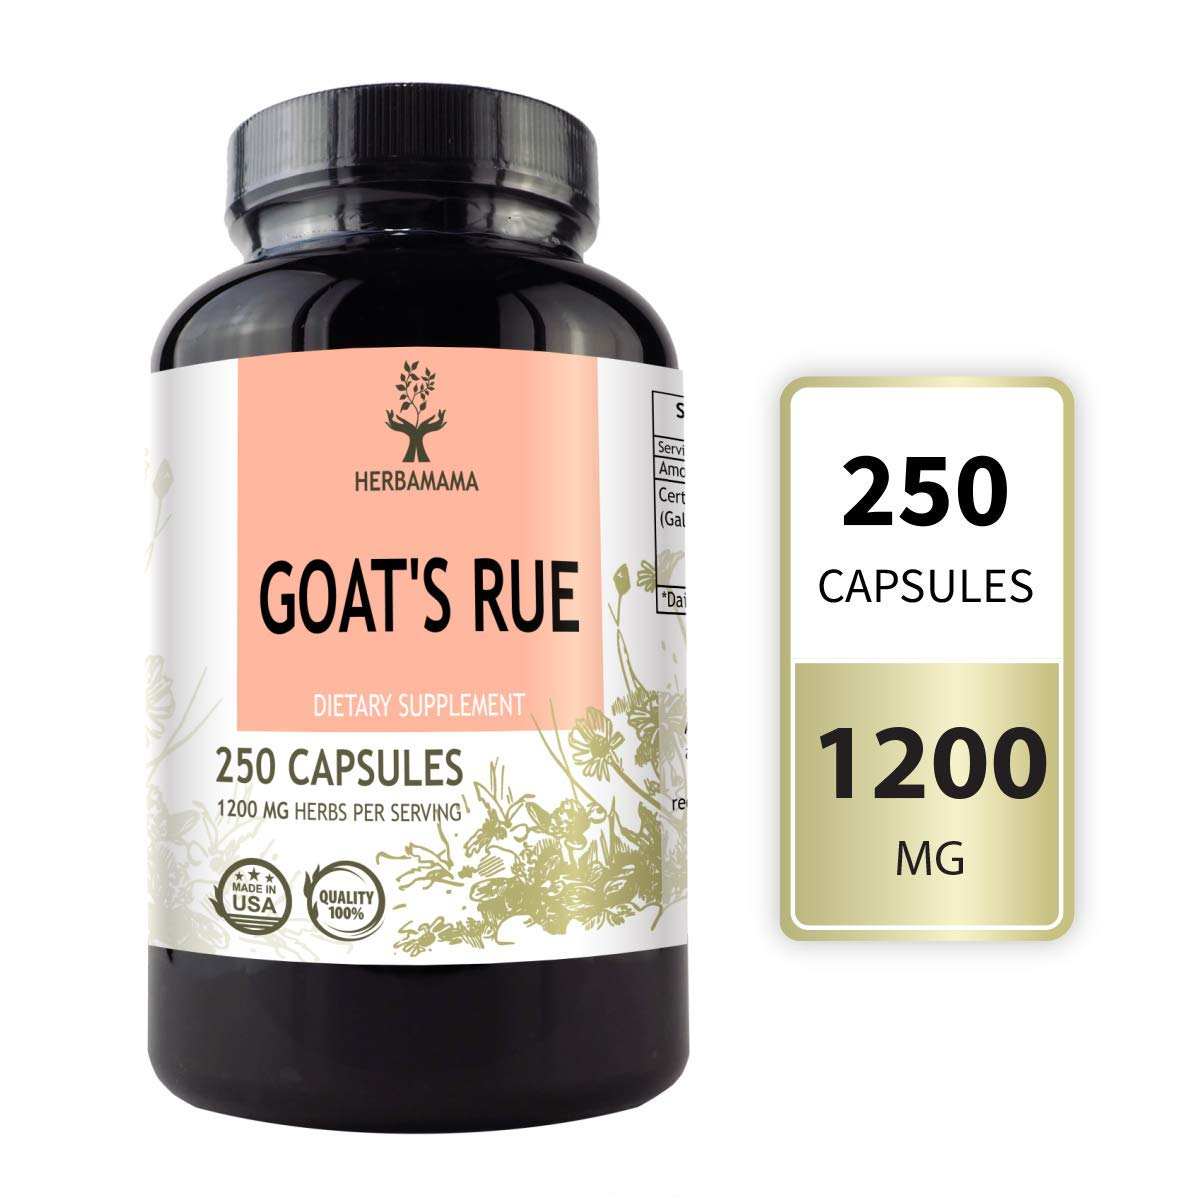 HERBAMAMA Goat's Rue Capsules - Galega Officinalis Nutritional Supplement - 1200 mg, 250 Capsules - Promotes Milk Flow, Lactation & Mammary Tissue Development - Non-GMO Support for Breastfeeding